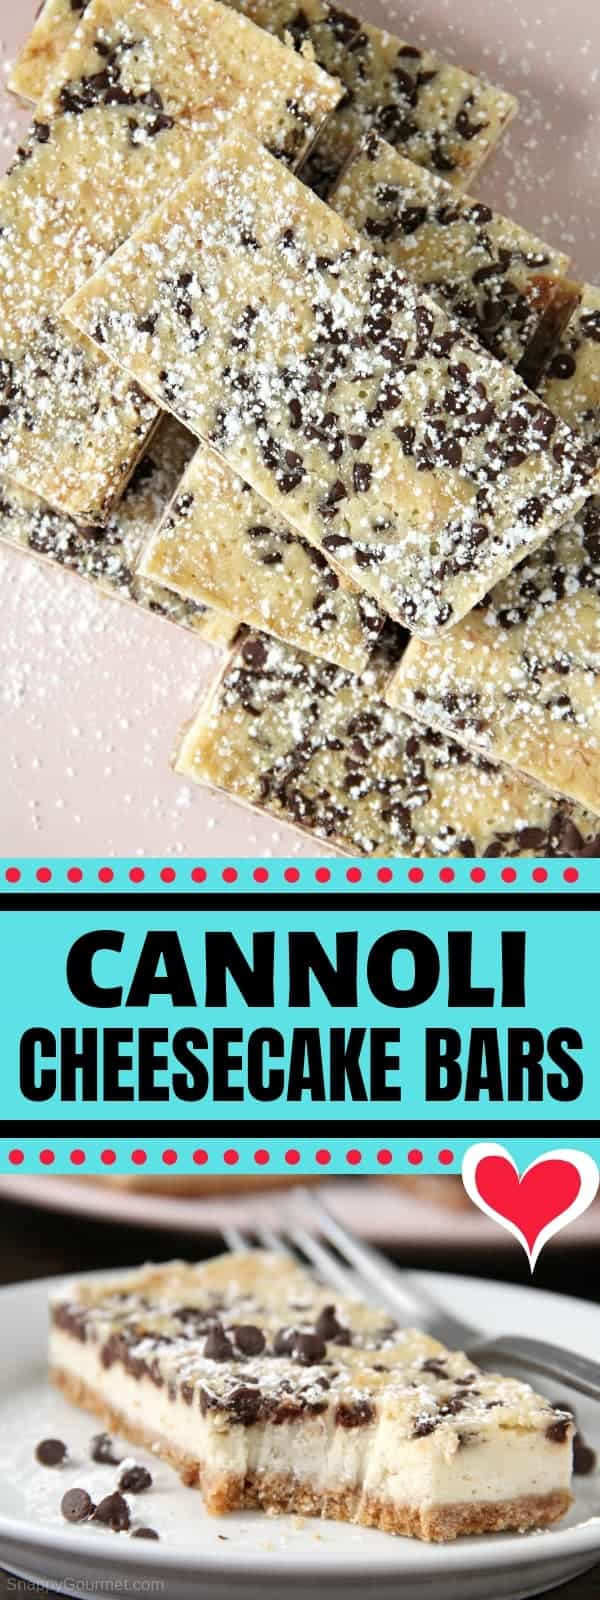 Cannoli Cheesecake Bars pin collage